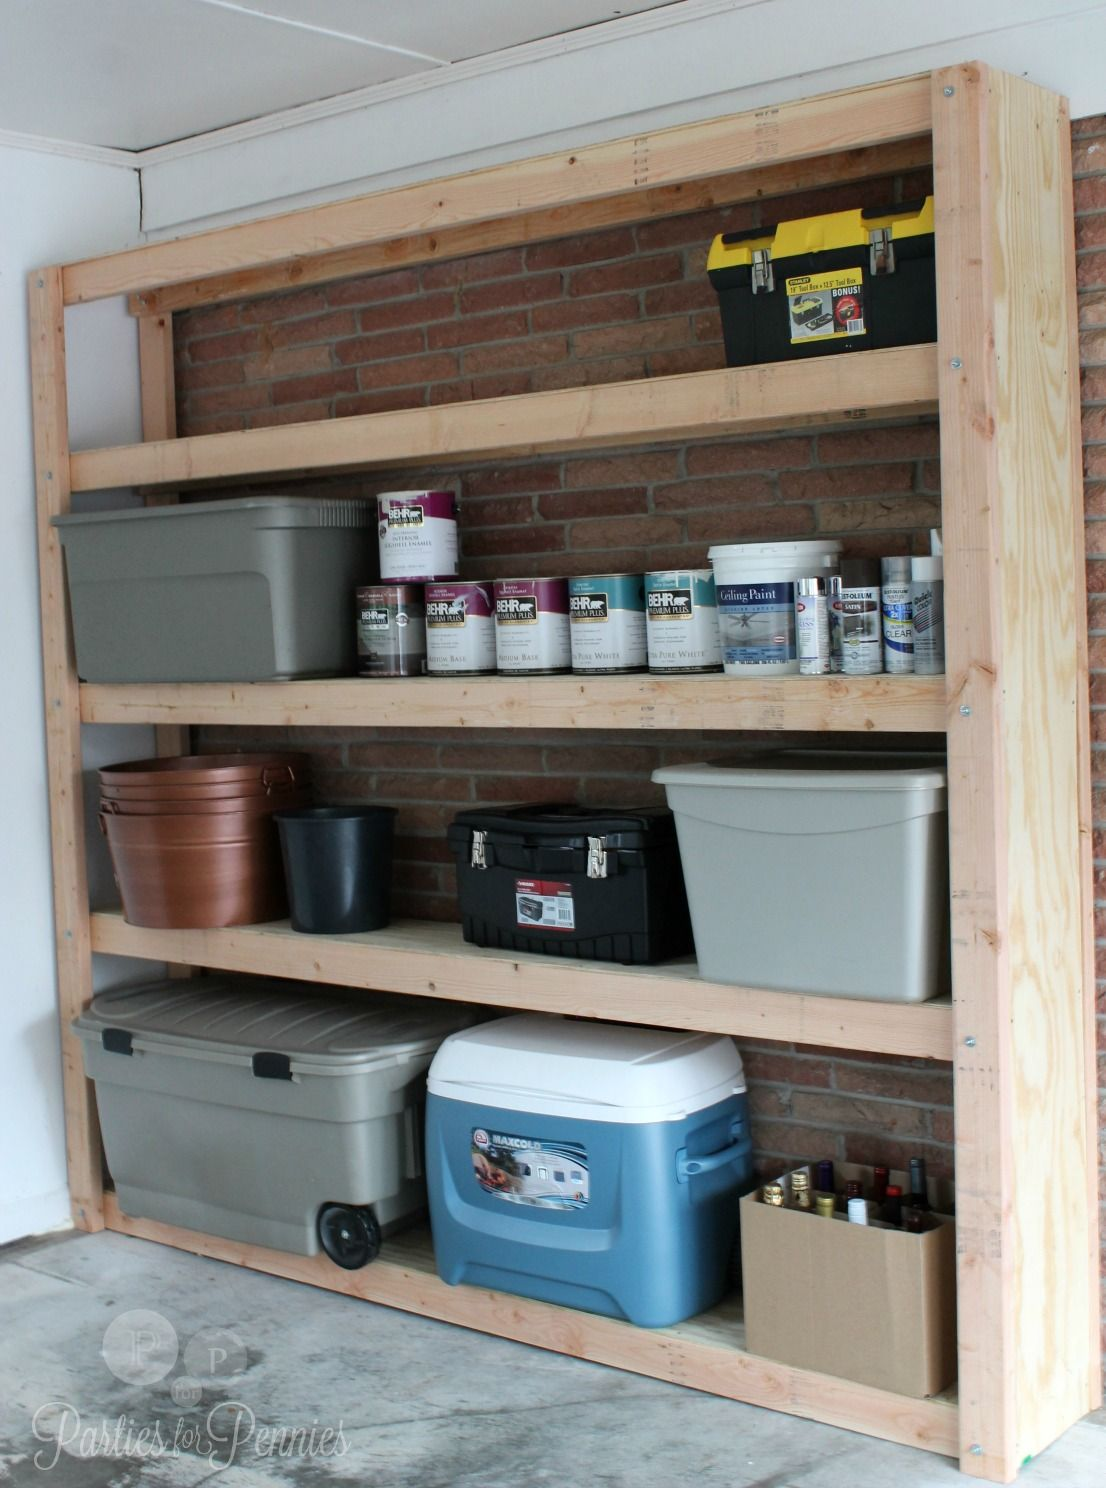 Garage Shelving Unit By PartiesforPennies.com. Free Printable Plans To Make  Your Own!